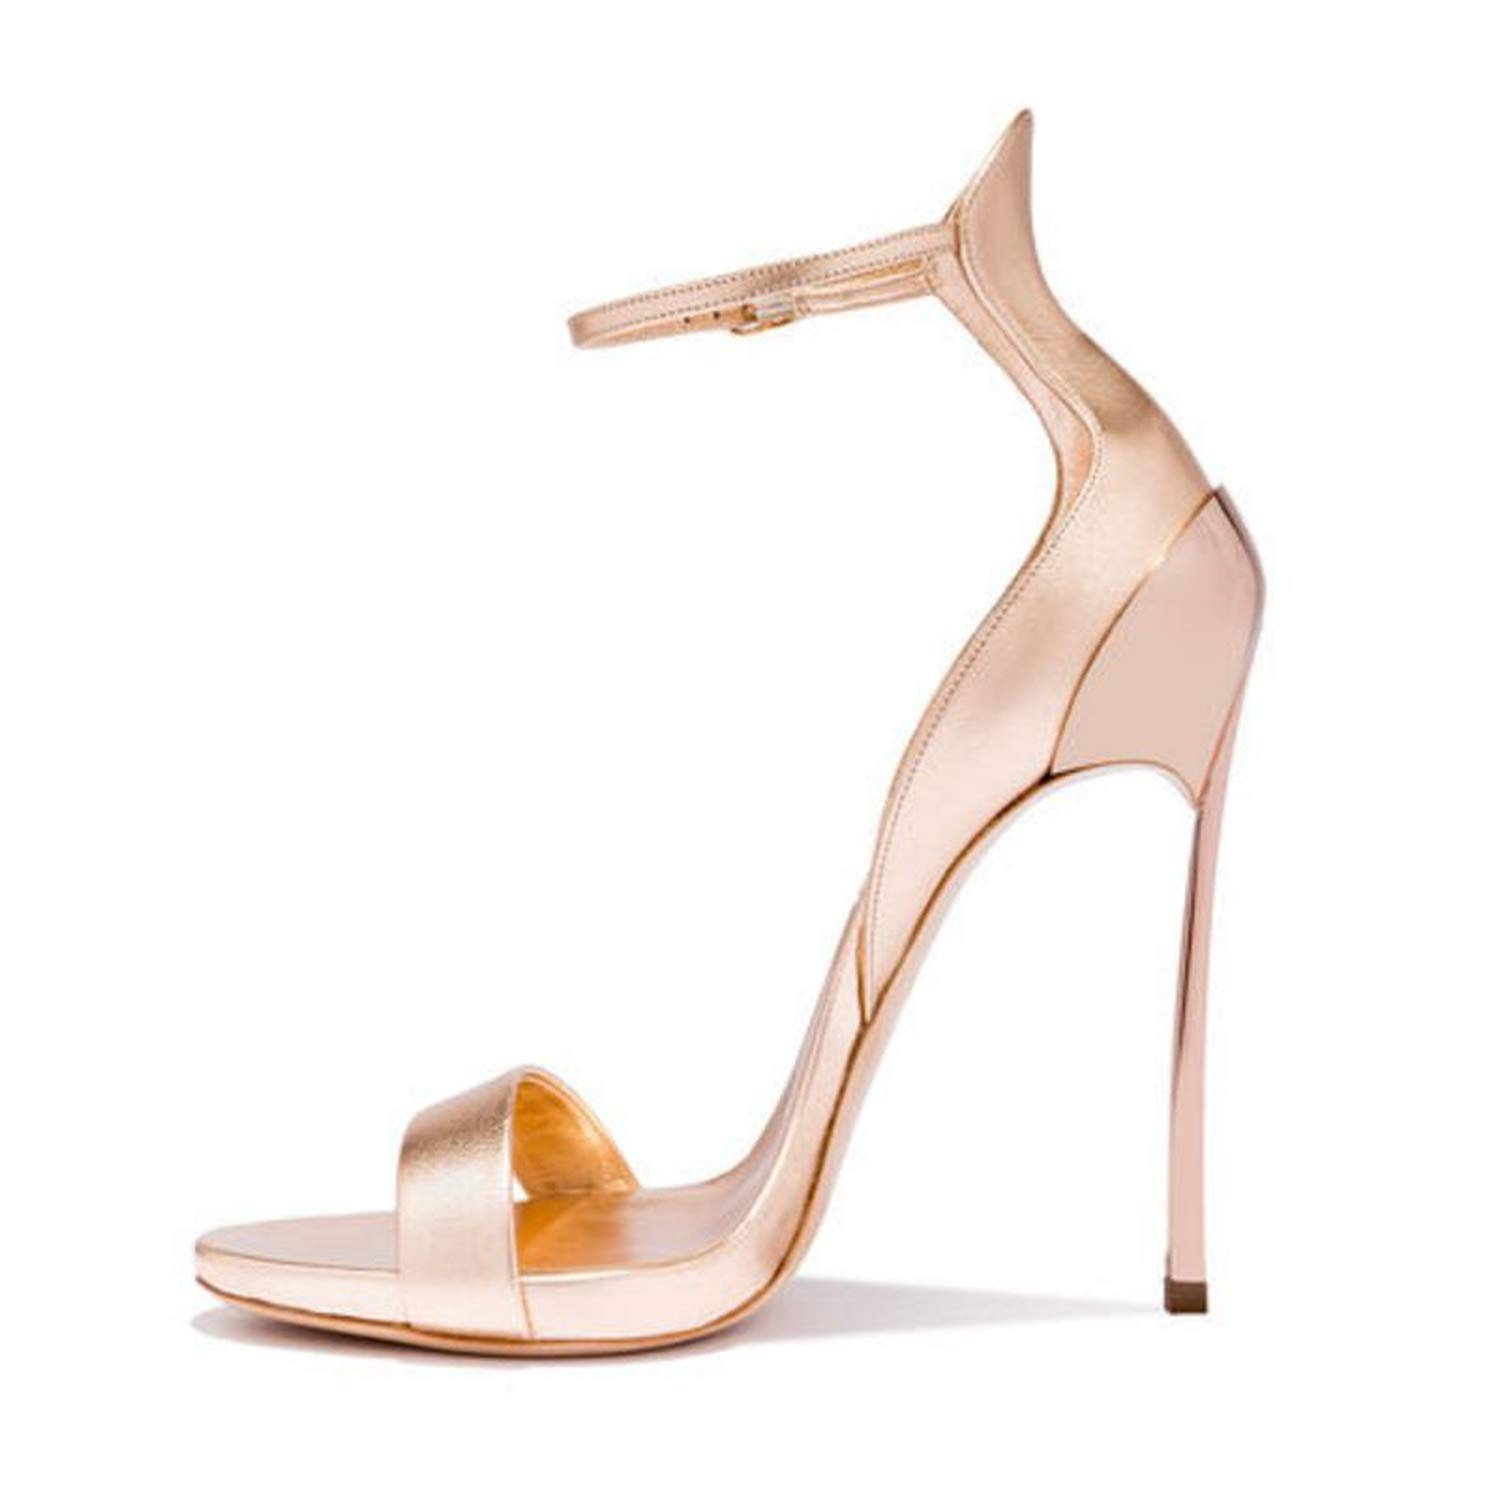 Champagne color QianQianStore Size 33-43 Supper High Heel Sandals Ankle Strap Thin Heel Platform Ladies Summer Sexy